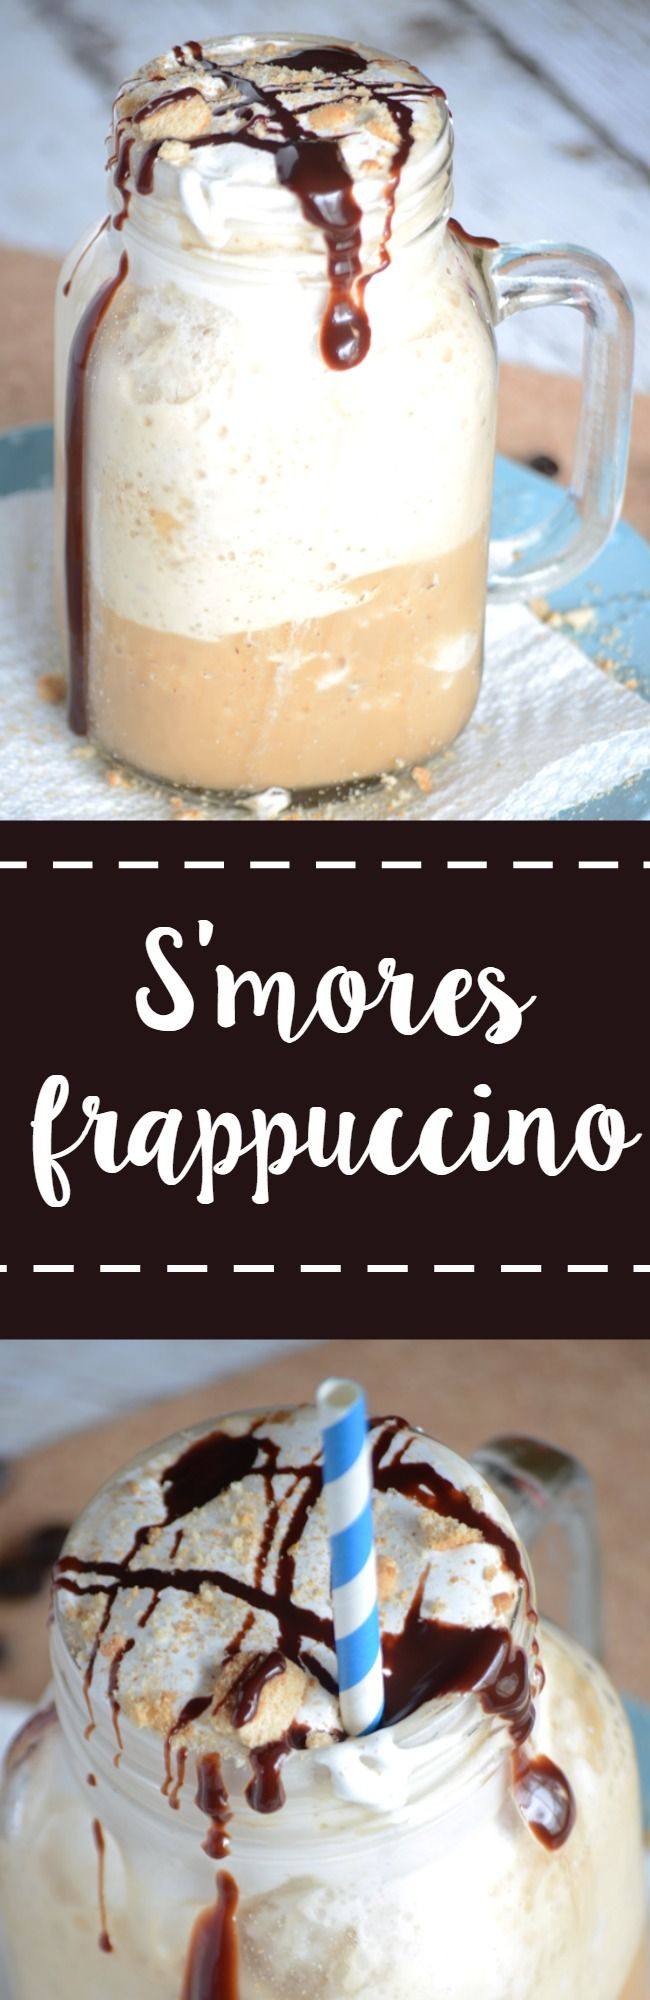 Easy s'mores frappuccino recipe!  Make this easy drink at home